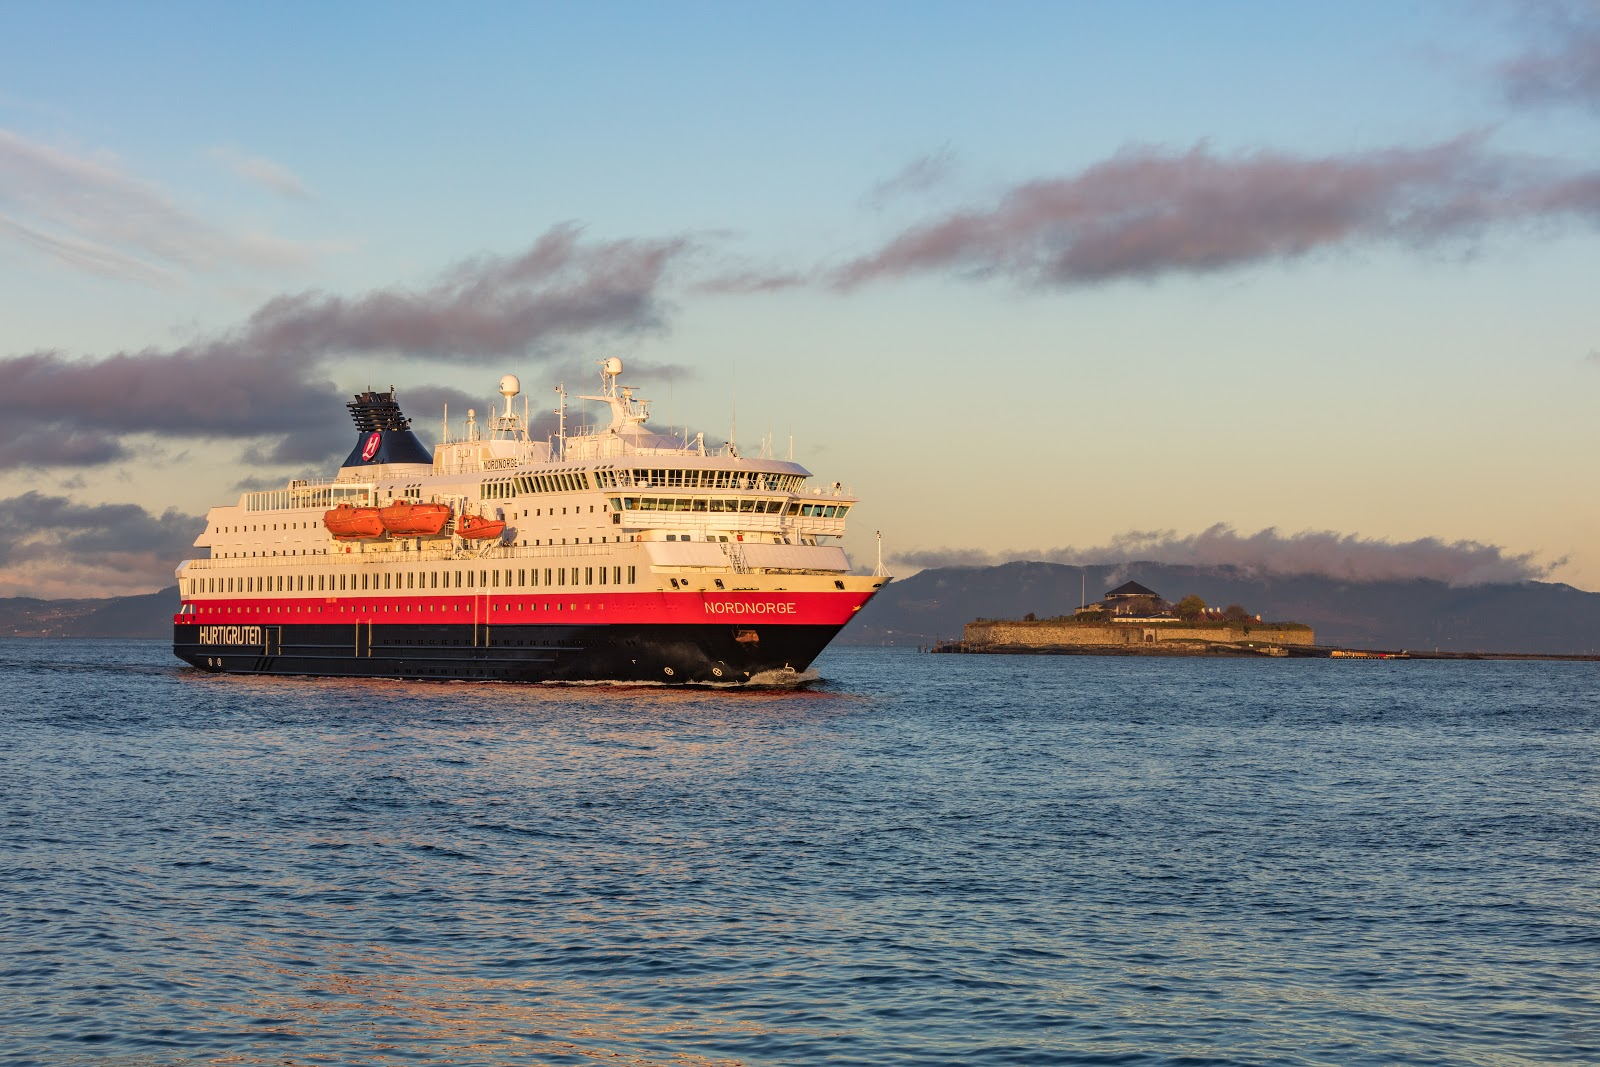 Hurtigruten's Nordnorge arriving in Trondheim and Munkholmen Island. Photo: ©Fotoknoff.no. Unauthorized use is prohibited.